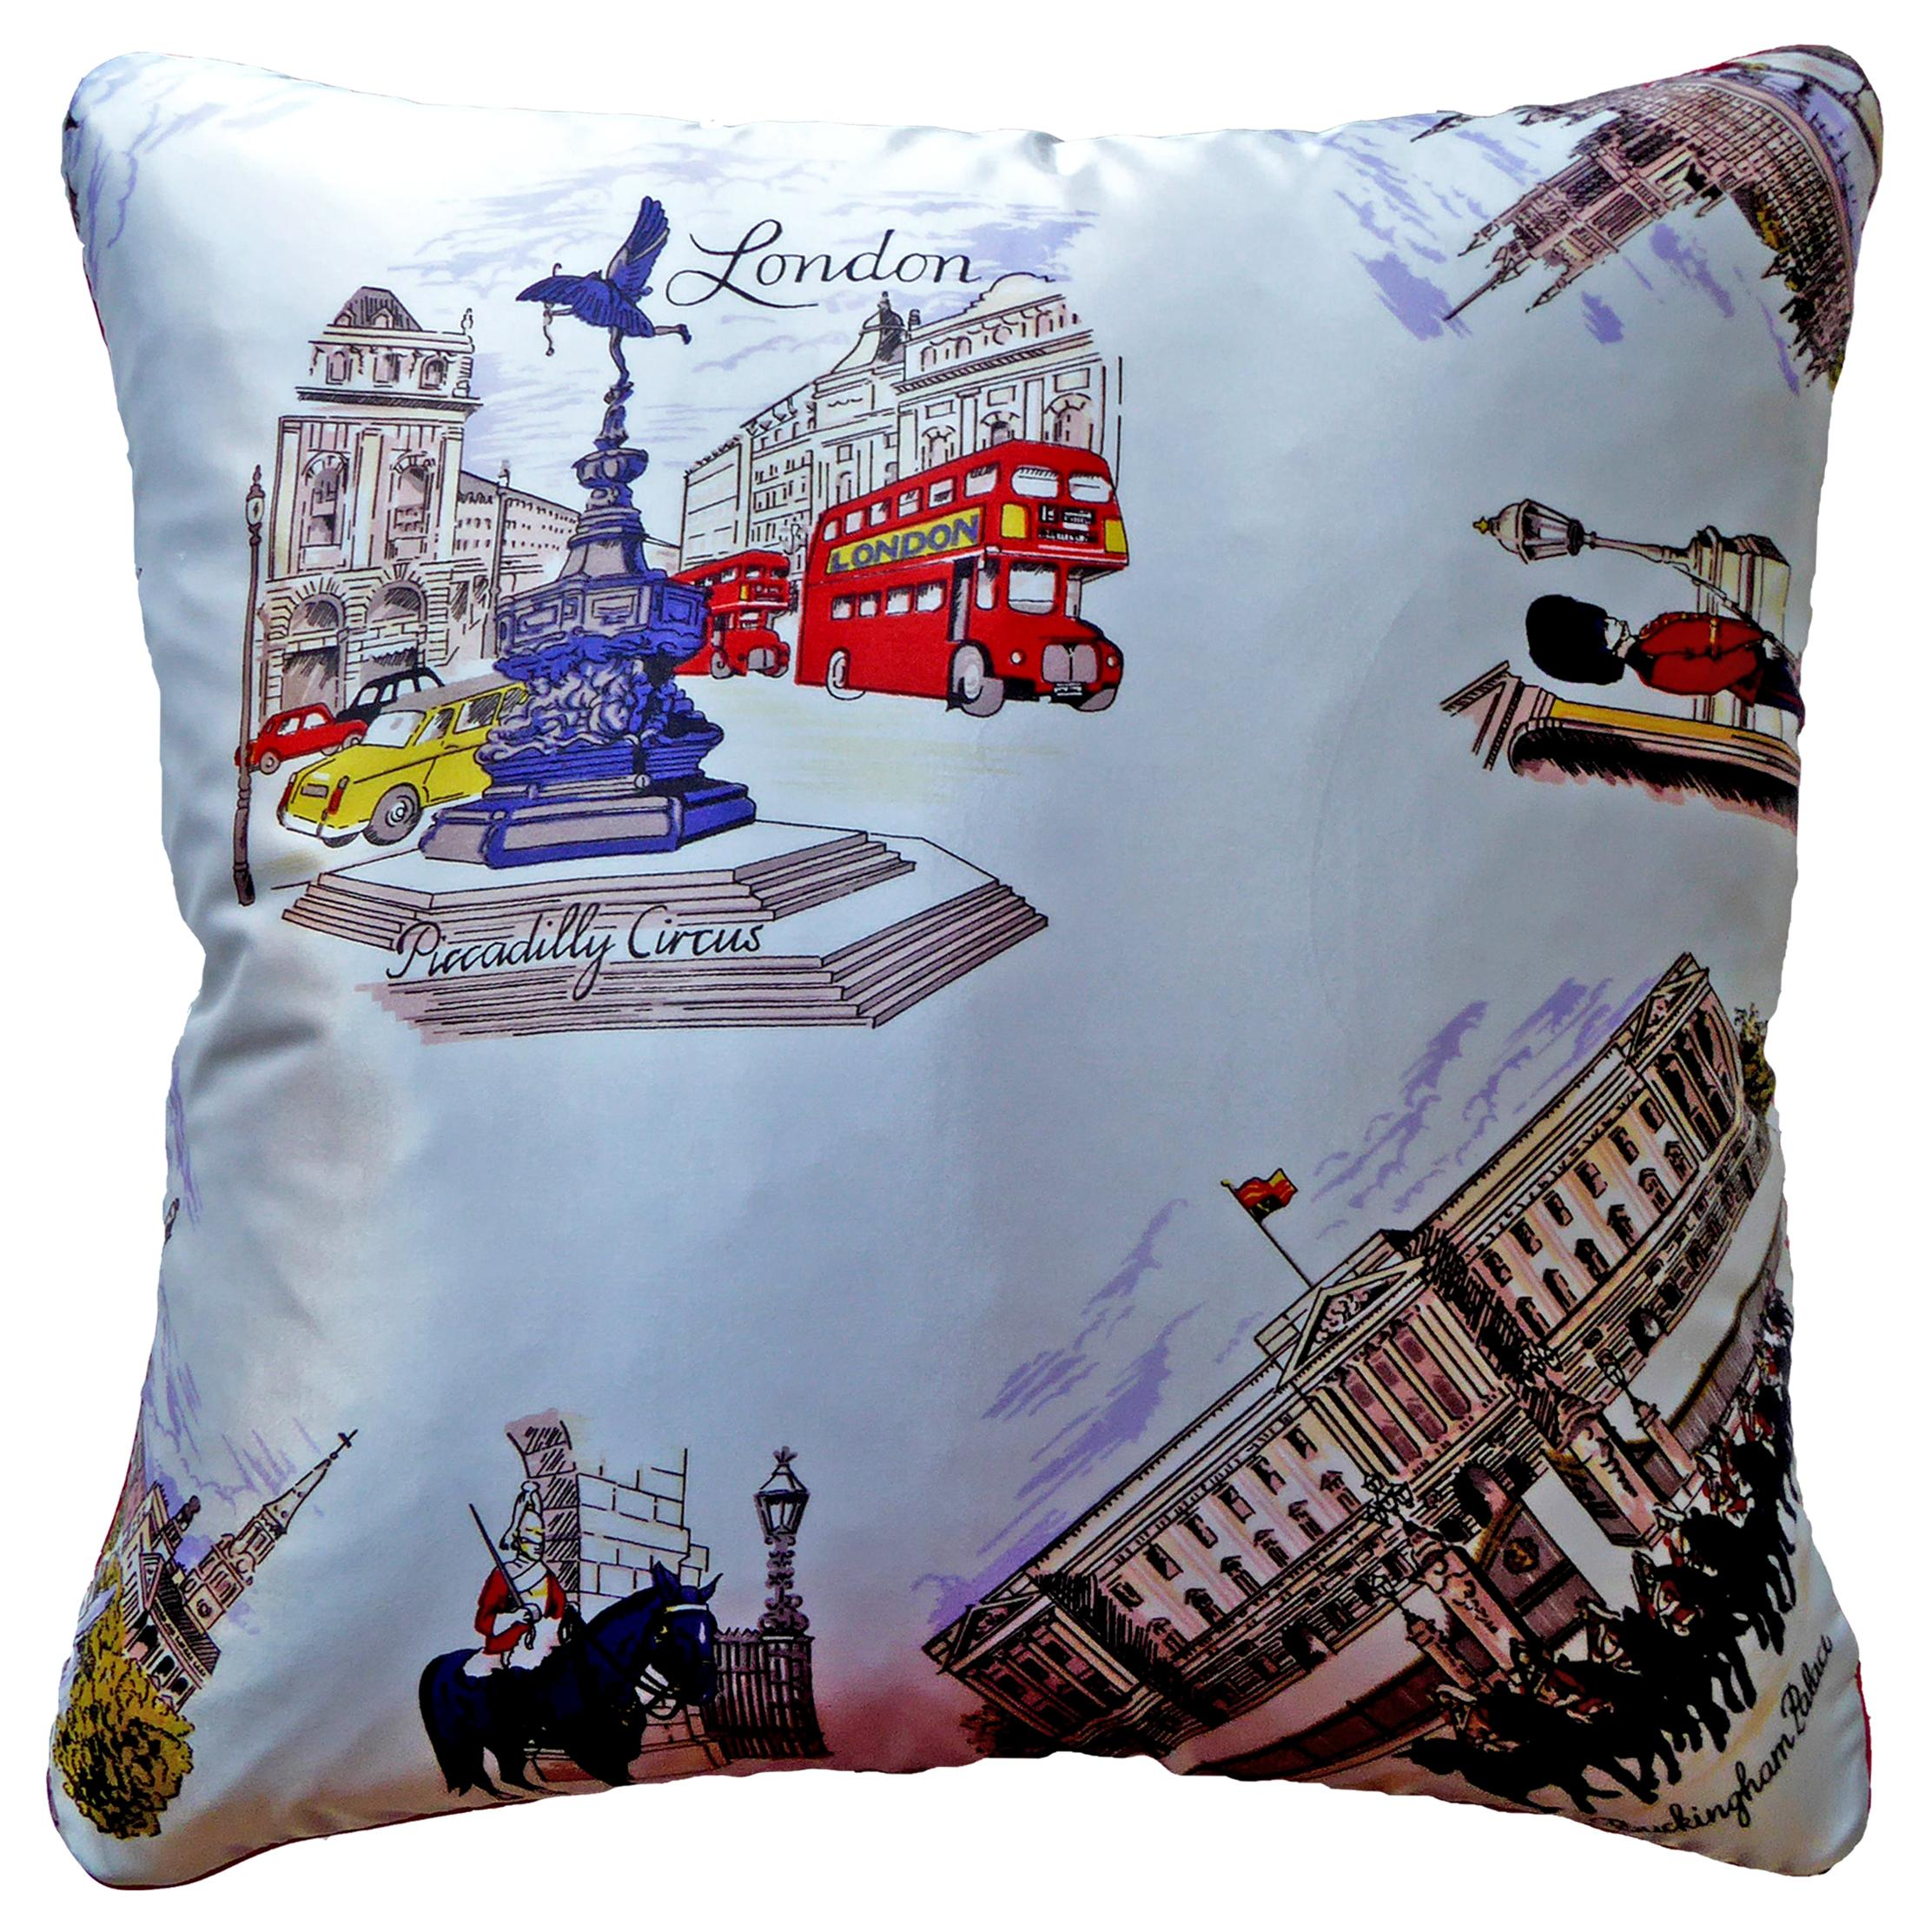 'Vintage Cushions' Luxury Bespoke Luxury Pillow 'Piccadilly Circus', Made in UK